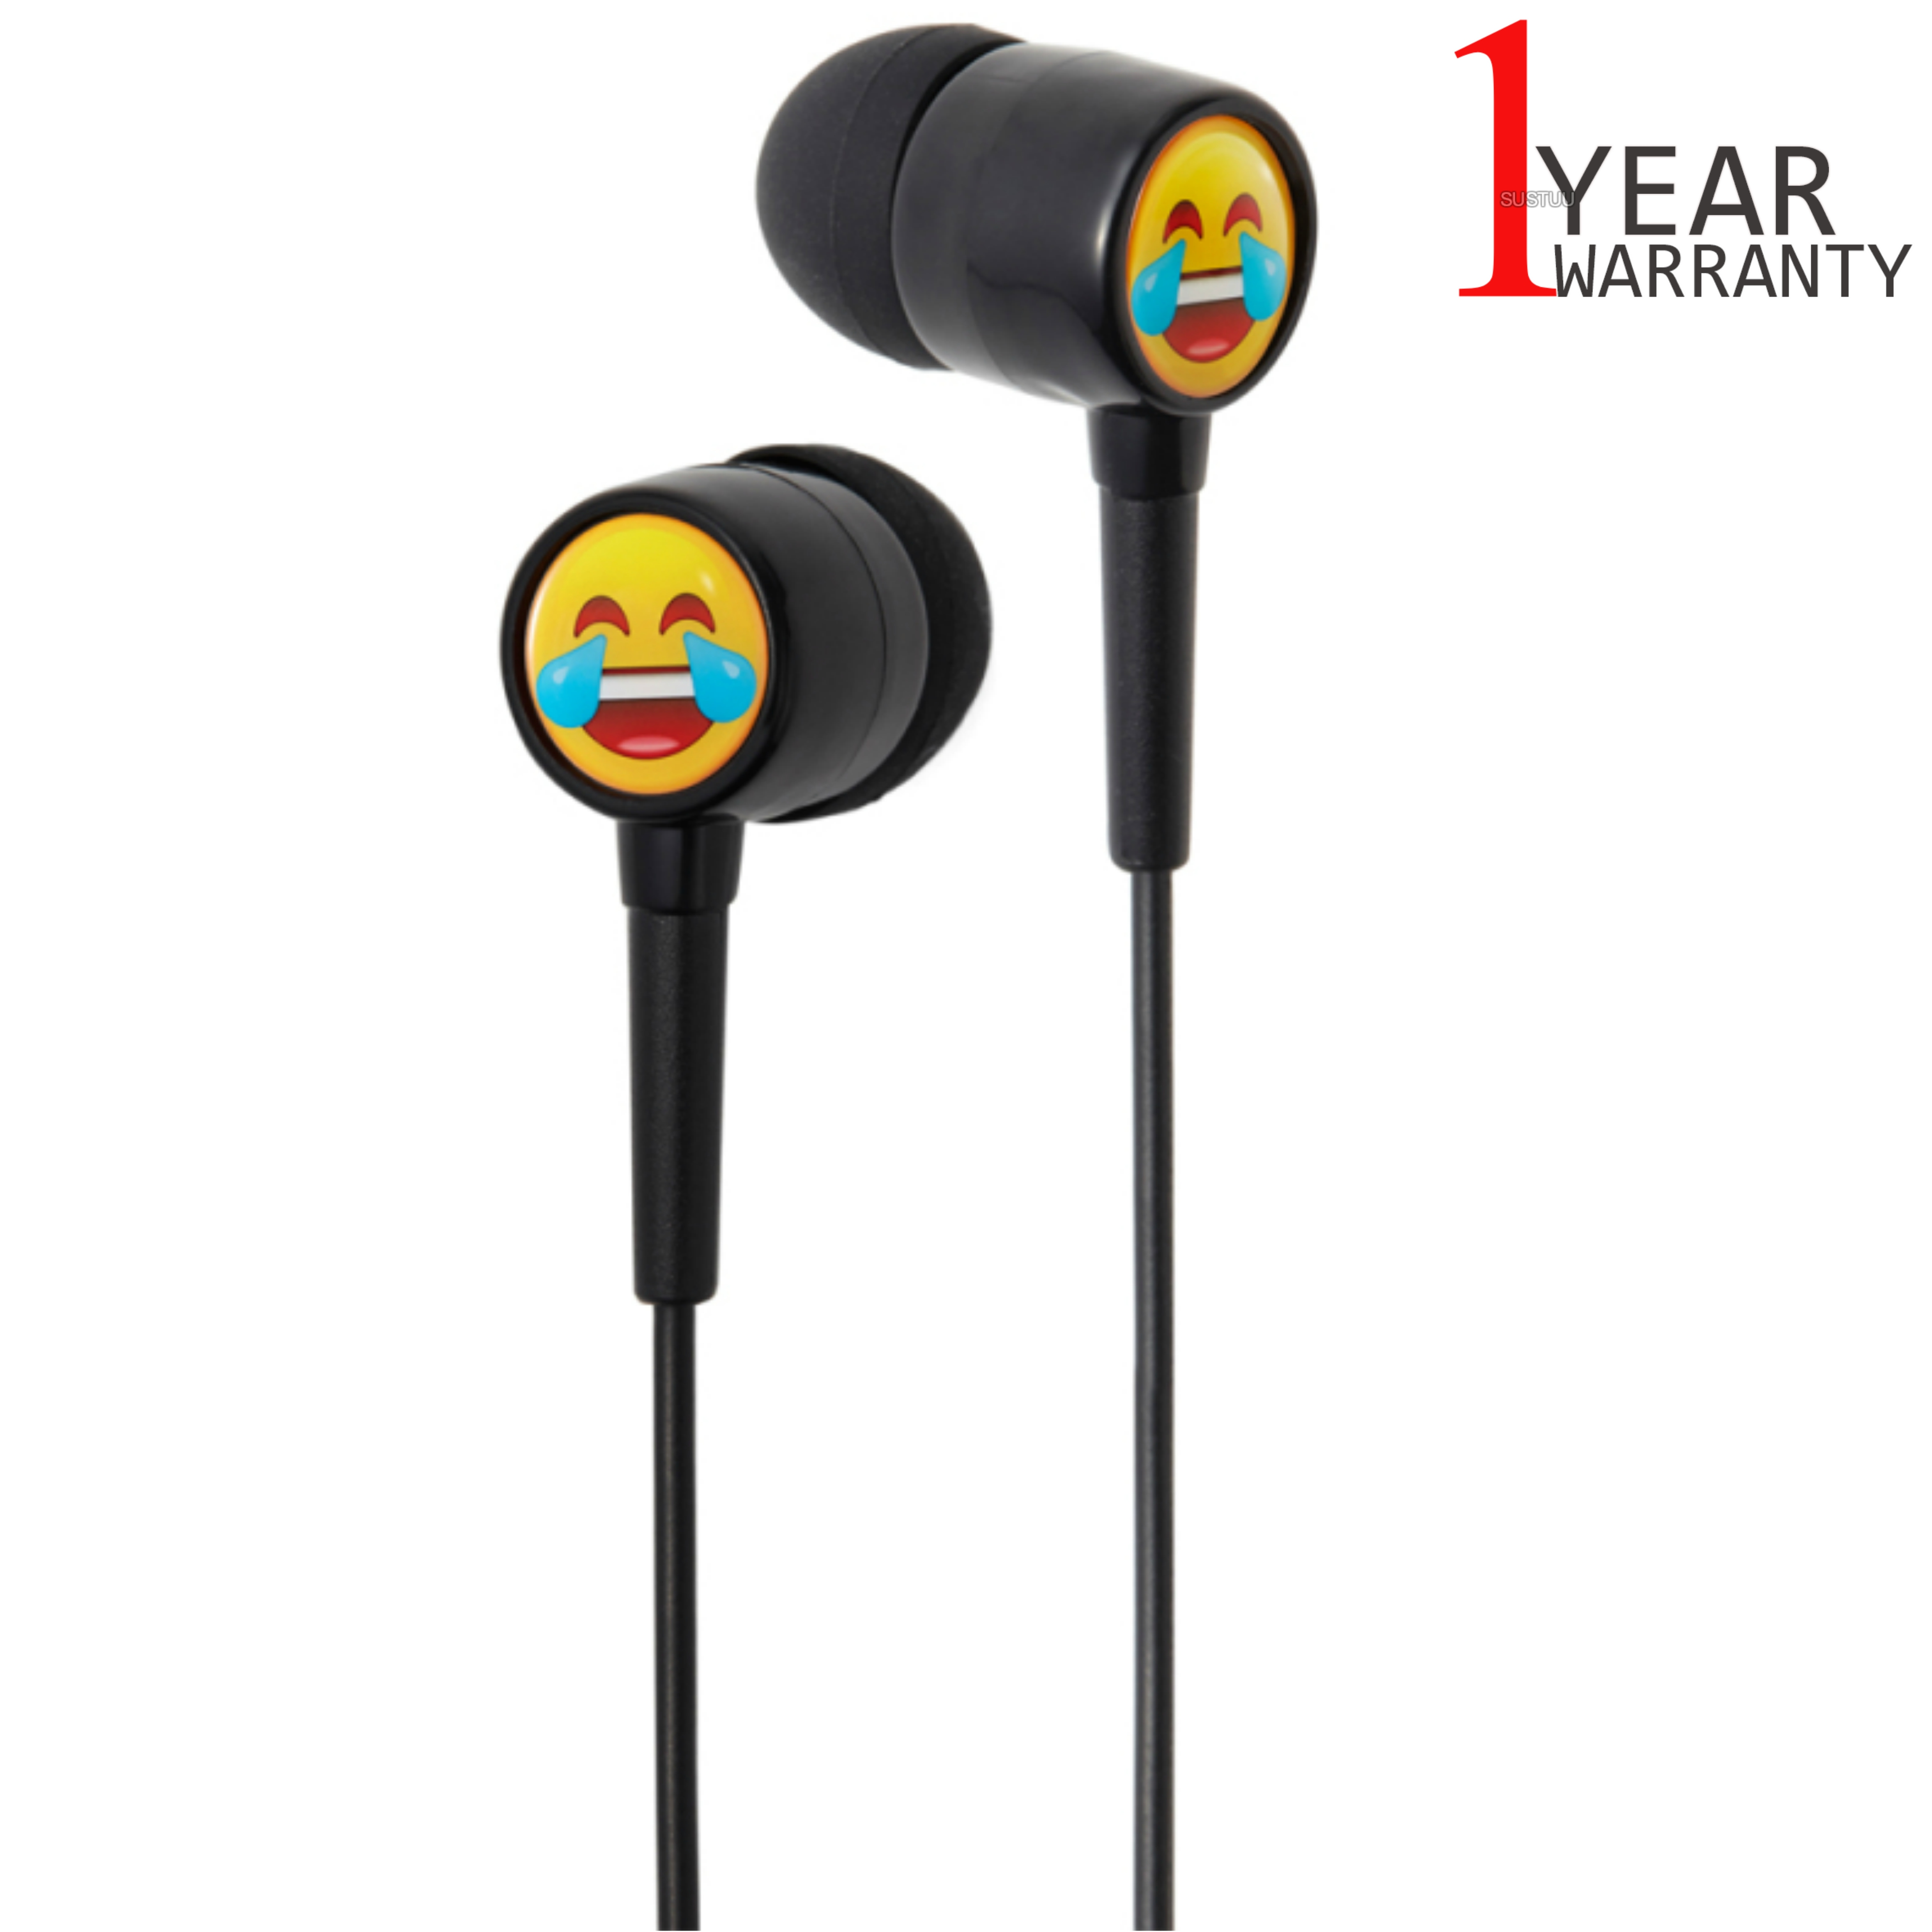 Groov-e GVEMJ22 EarMOJI's Stereo Earphones With Laughing Face/ Spare Earbuds